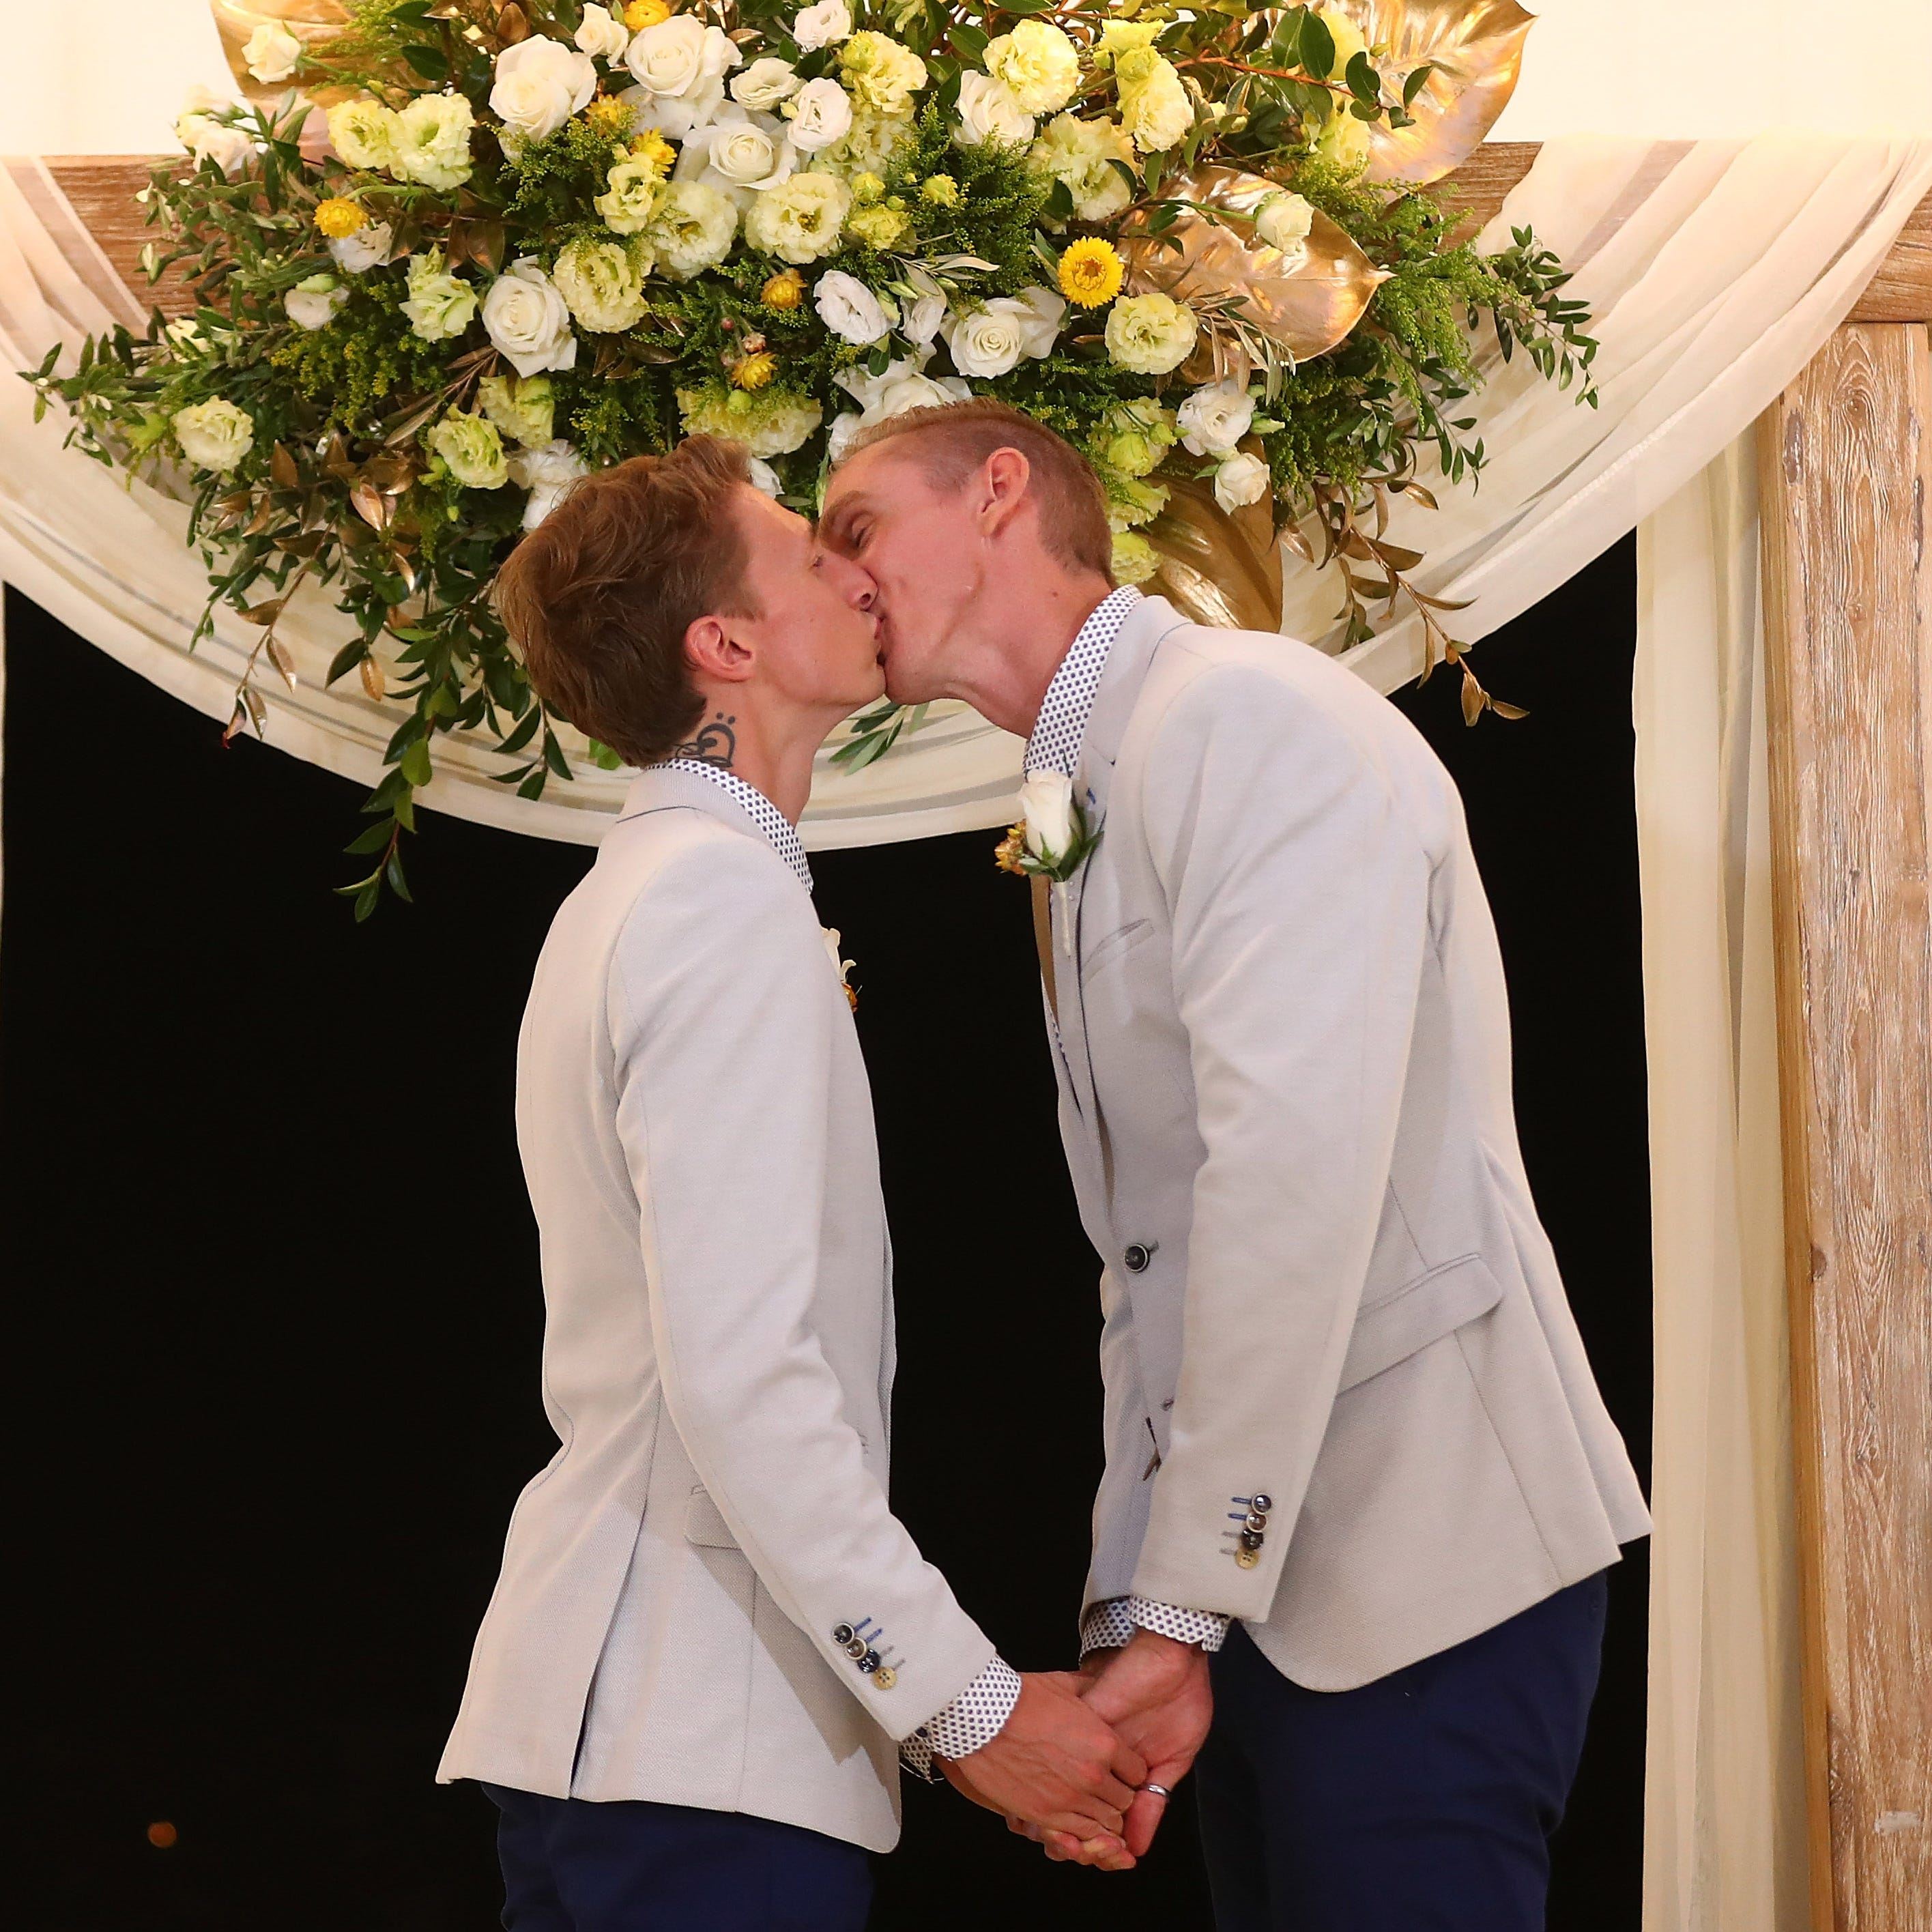 Craig Burns and Luke Sullivan kiss during the wedding ceremony after  Australian Marriage Act became legal